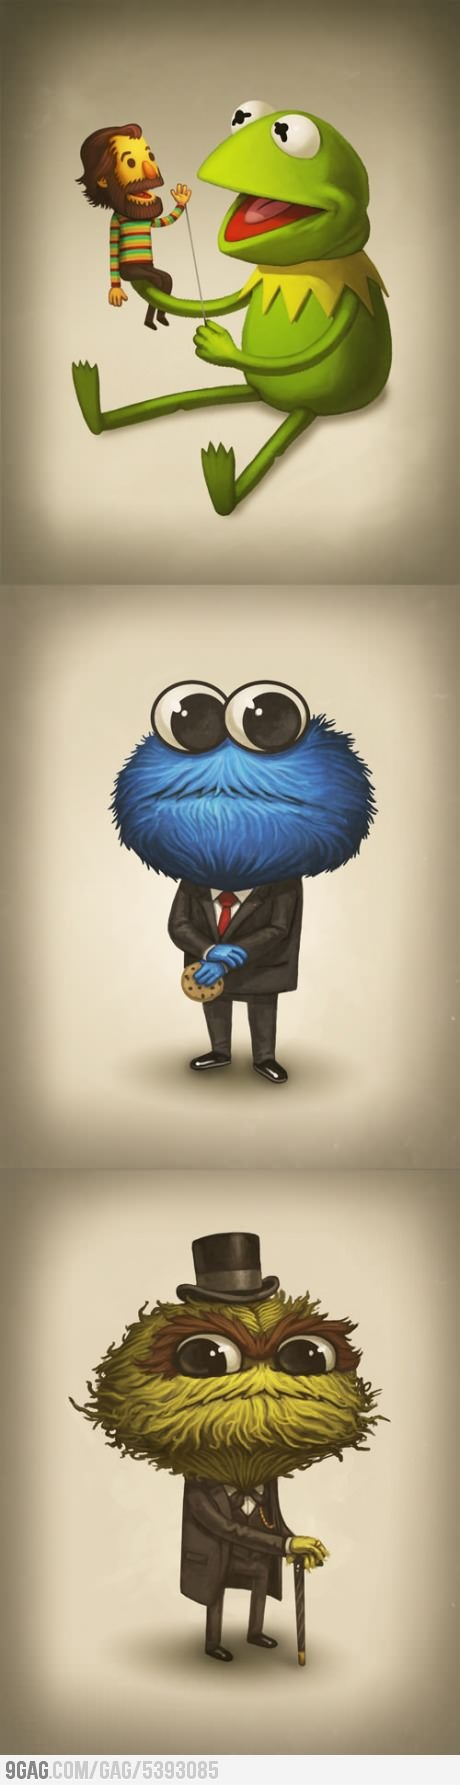 Tribute to Jim Henson by Mike Mitchell